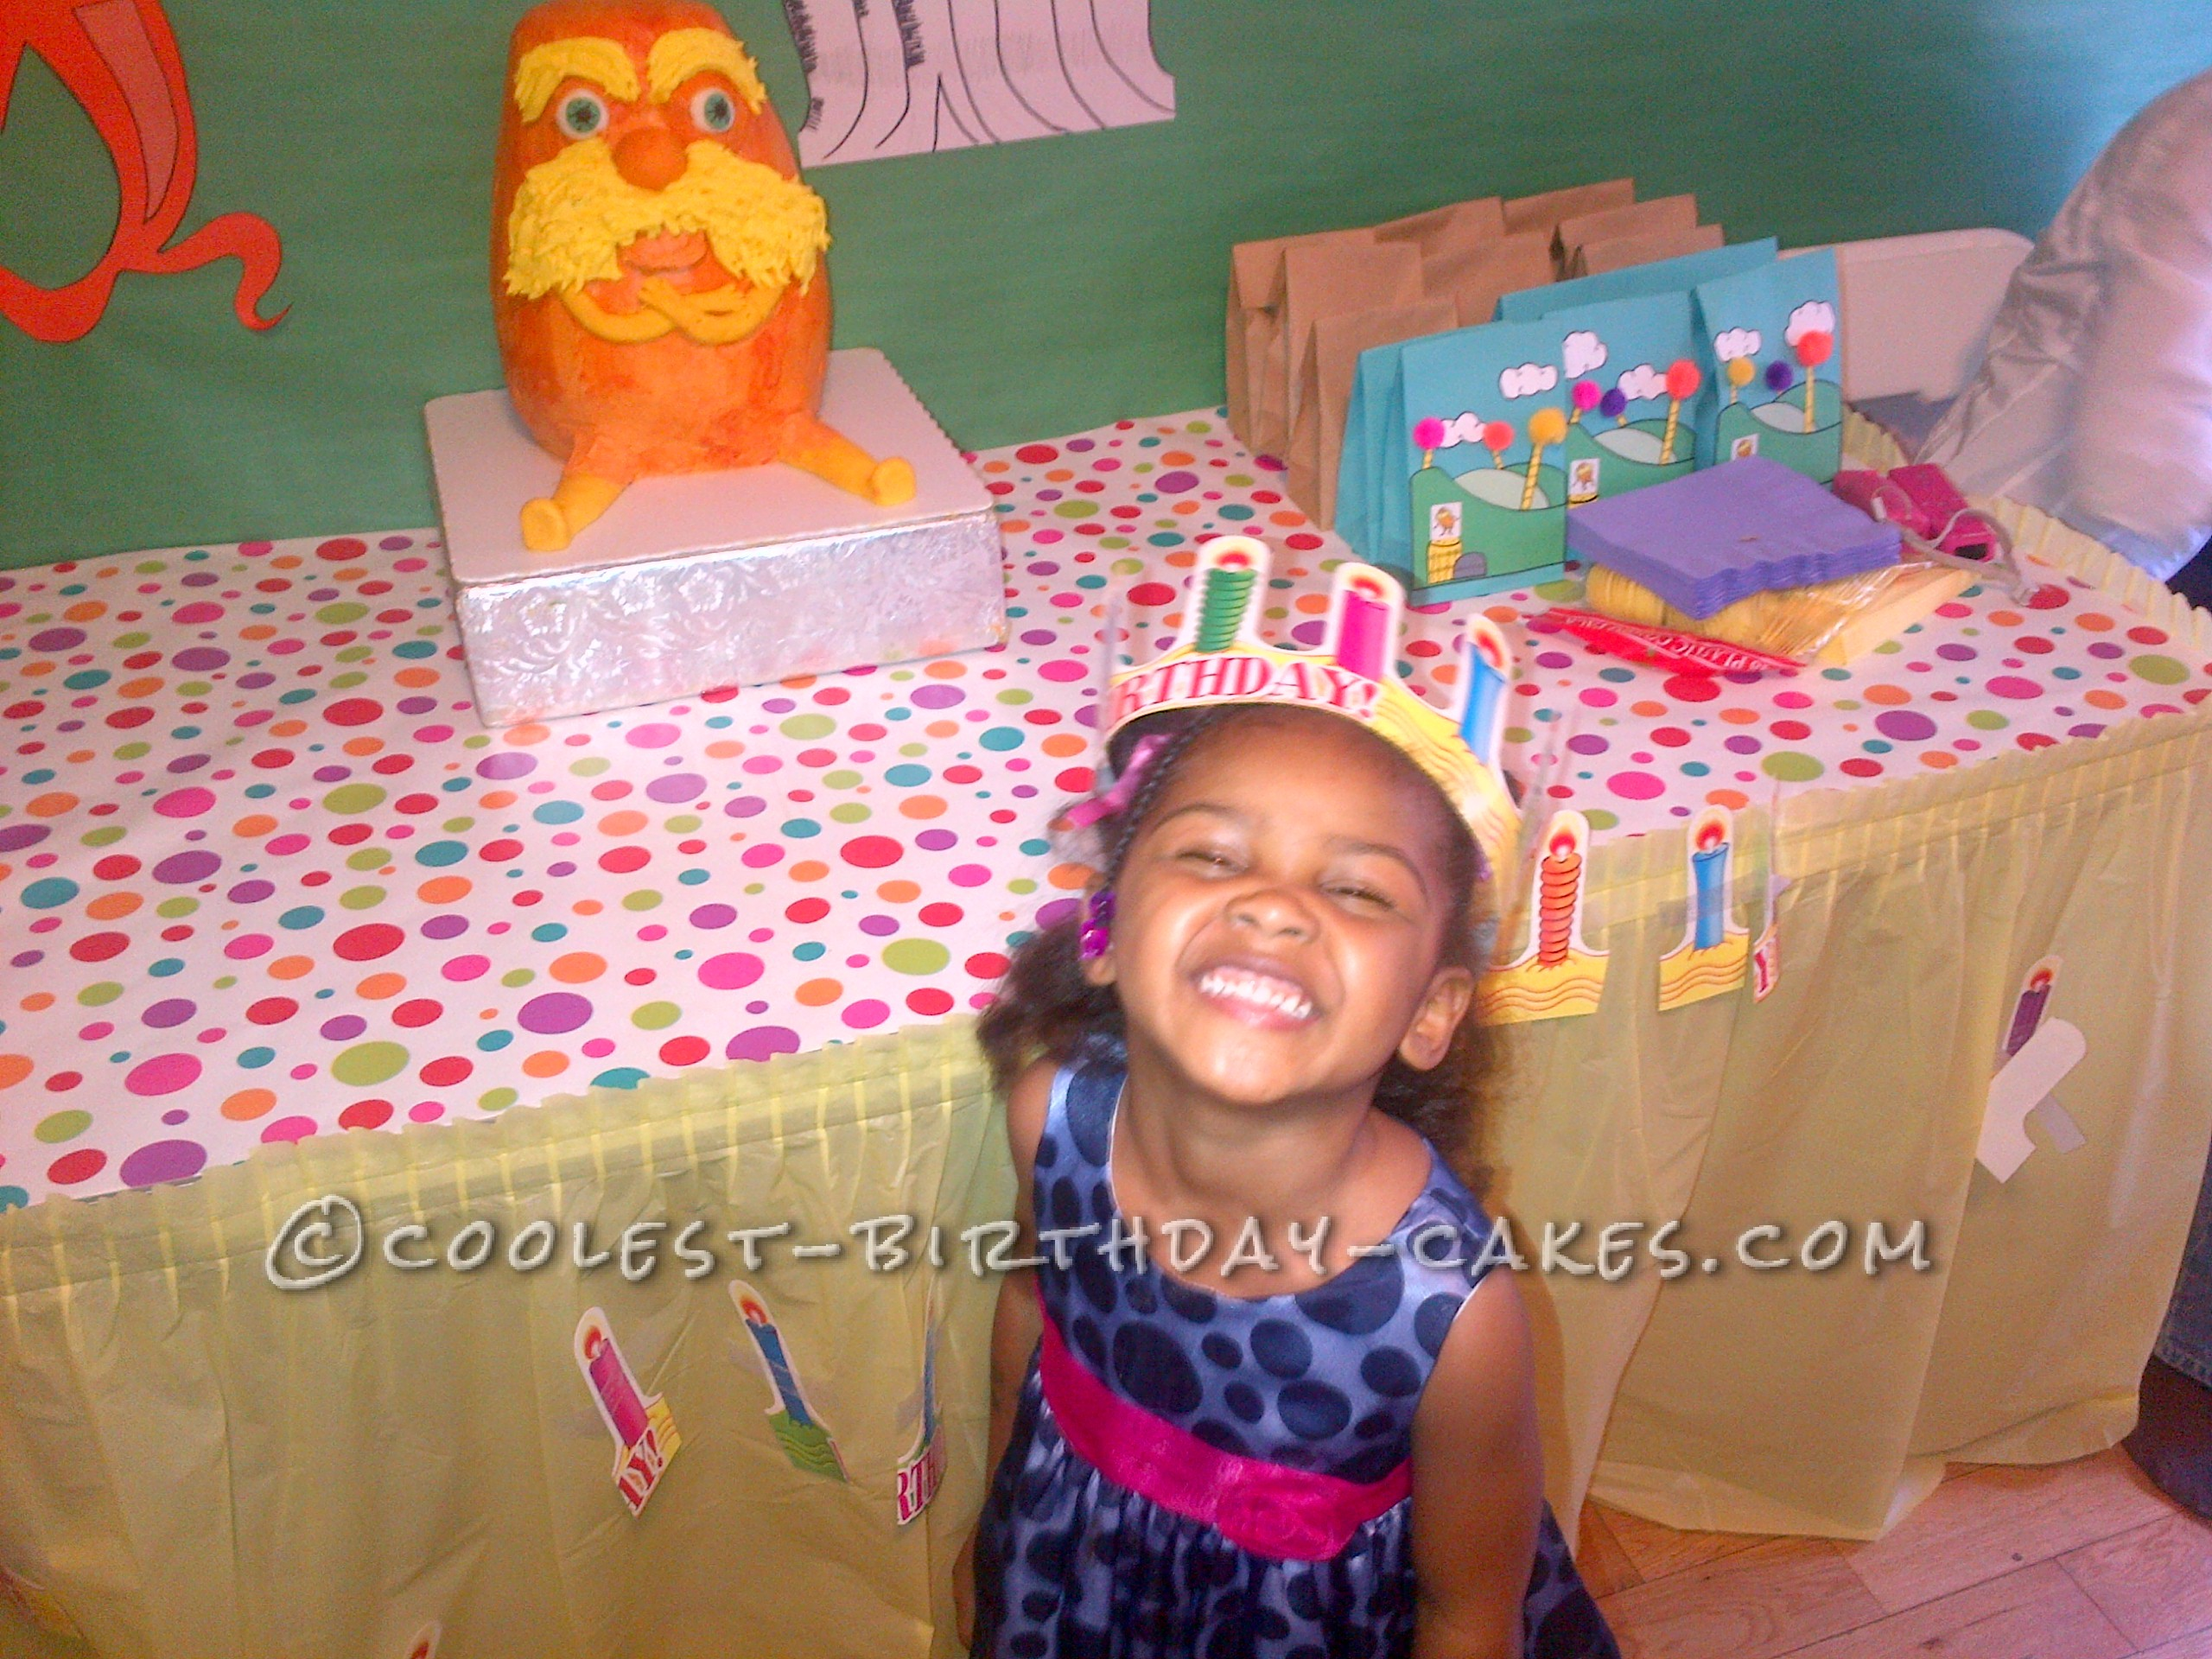 The birthay girl seeing her cake